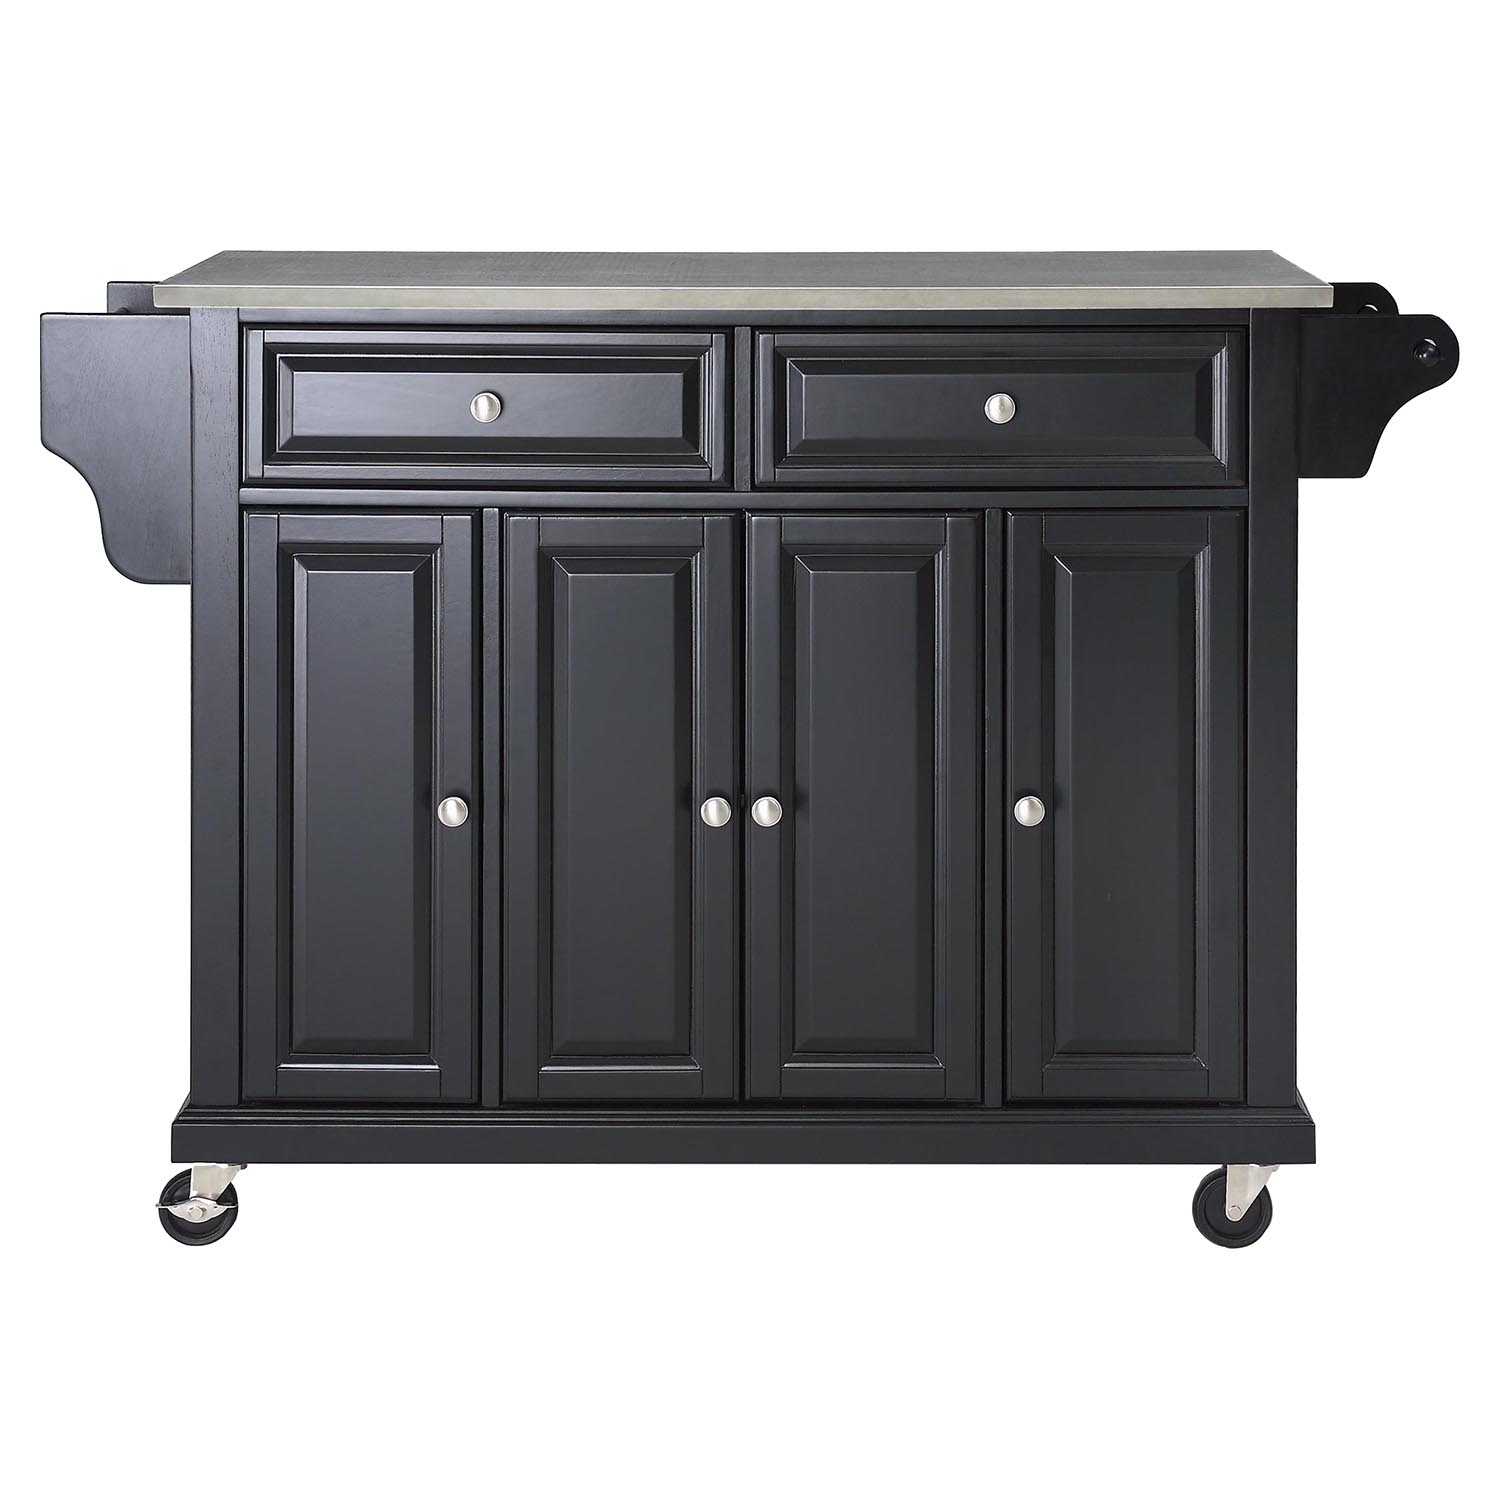 kitchen island cart stainless steel top stainless steel top kitchen cart island casters black 9390